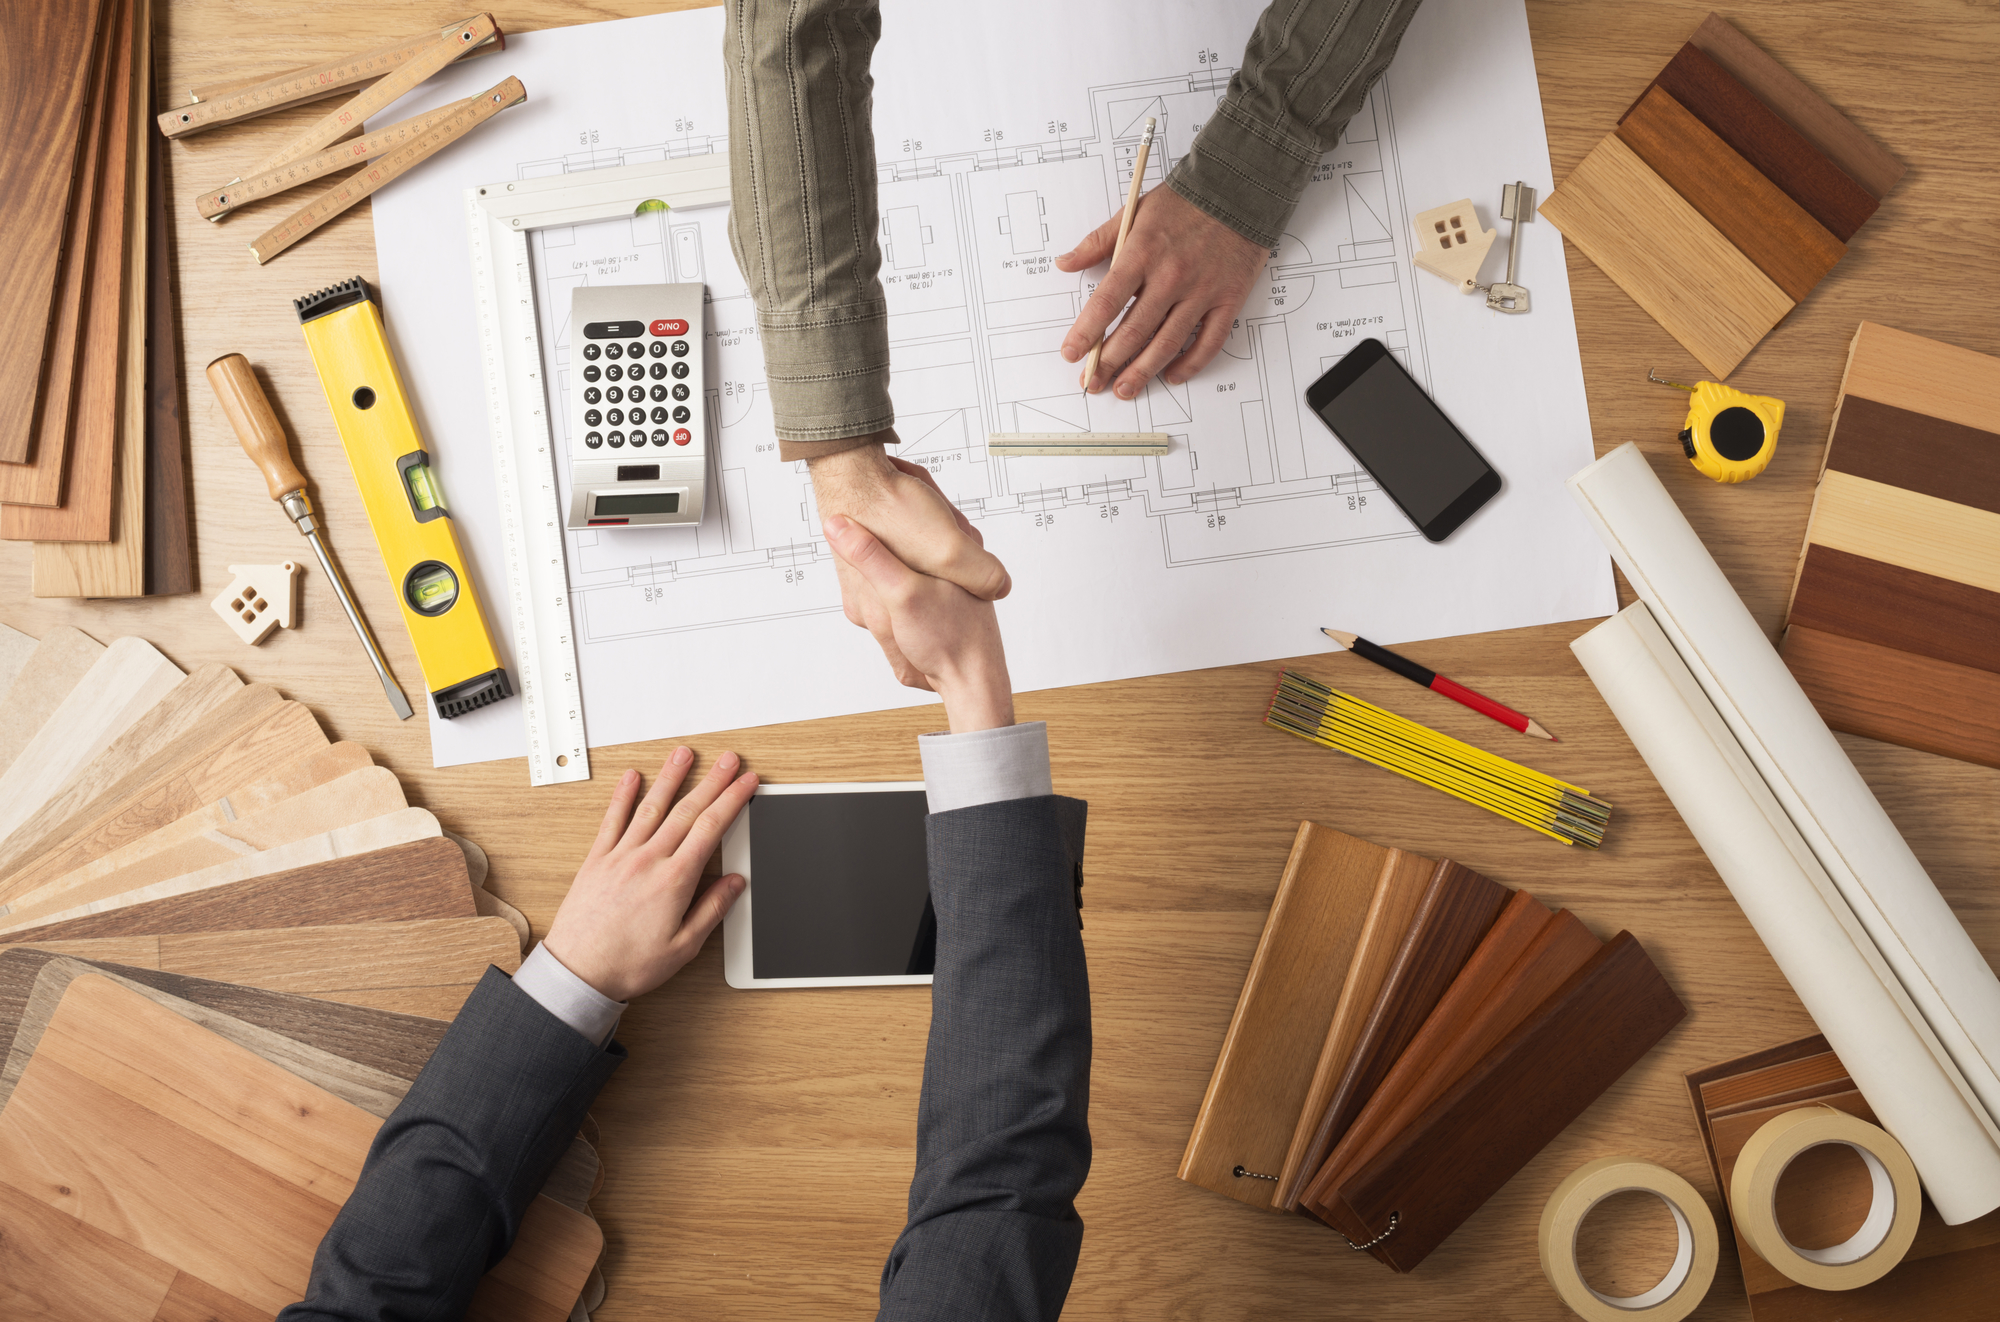 Handshake over tools and building plans Property Management